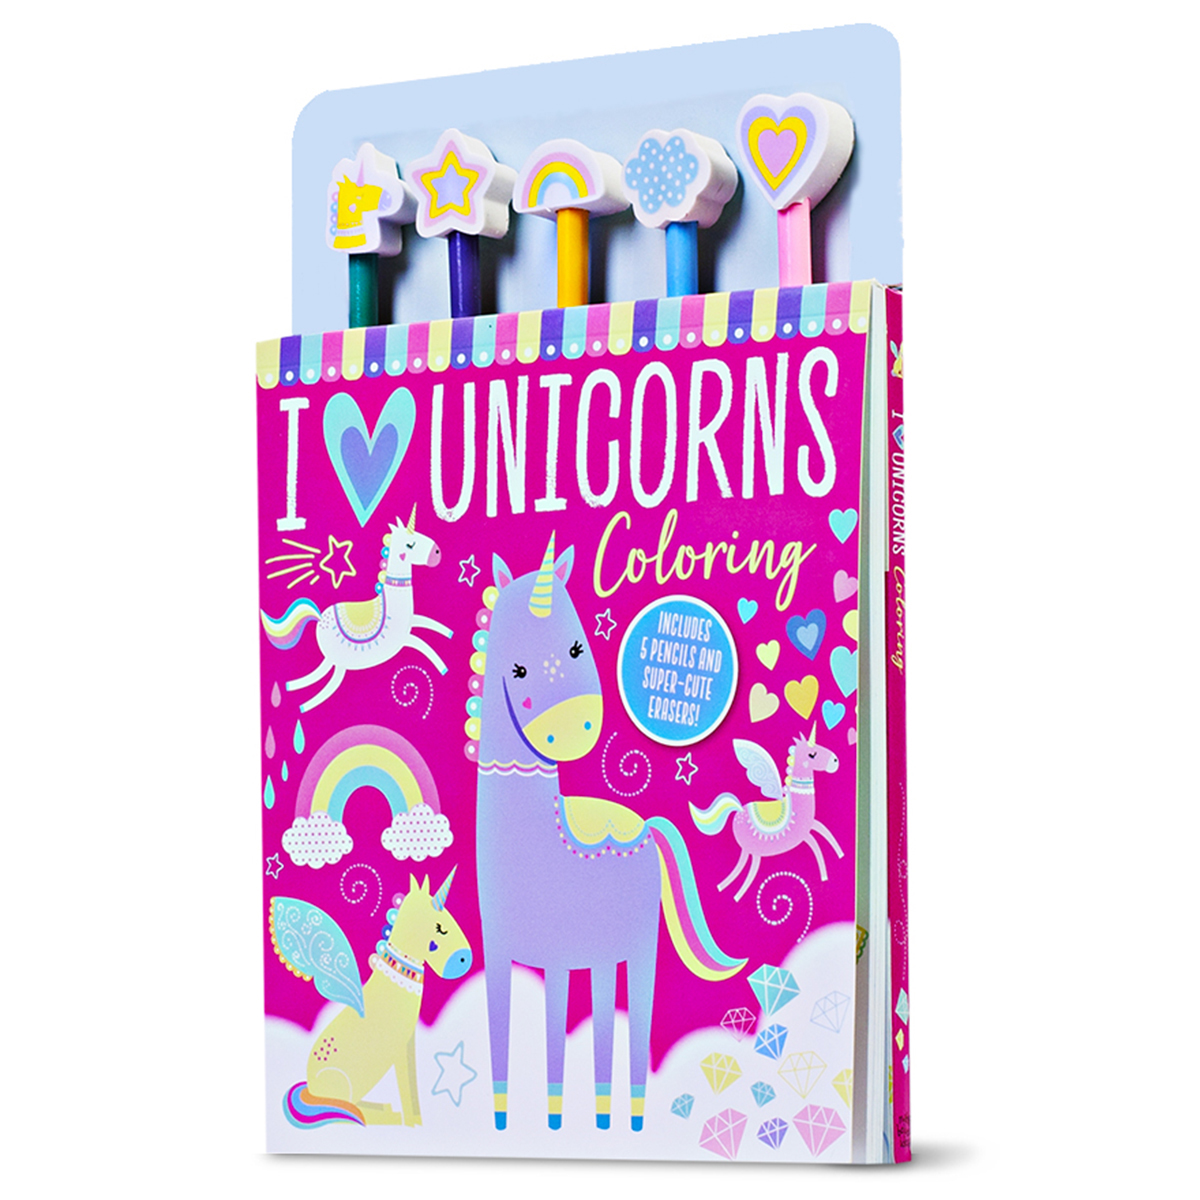 I Love Unicorns Coloring Kit